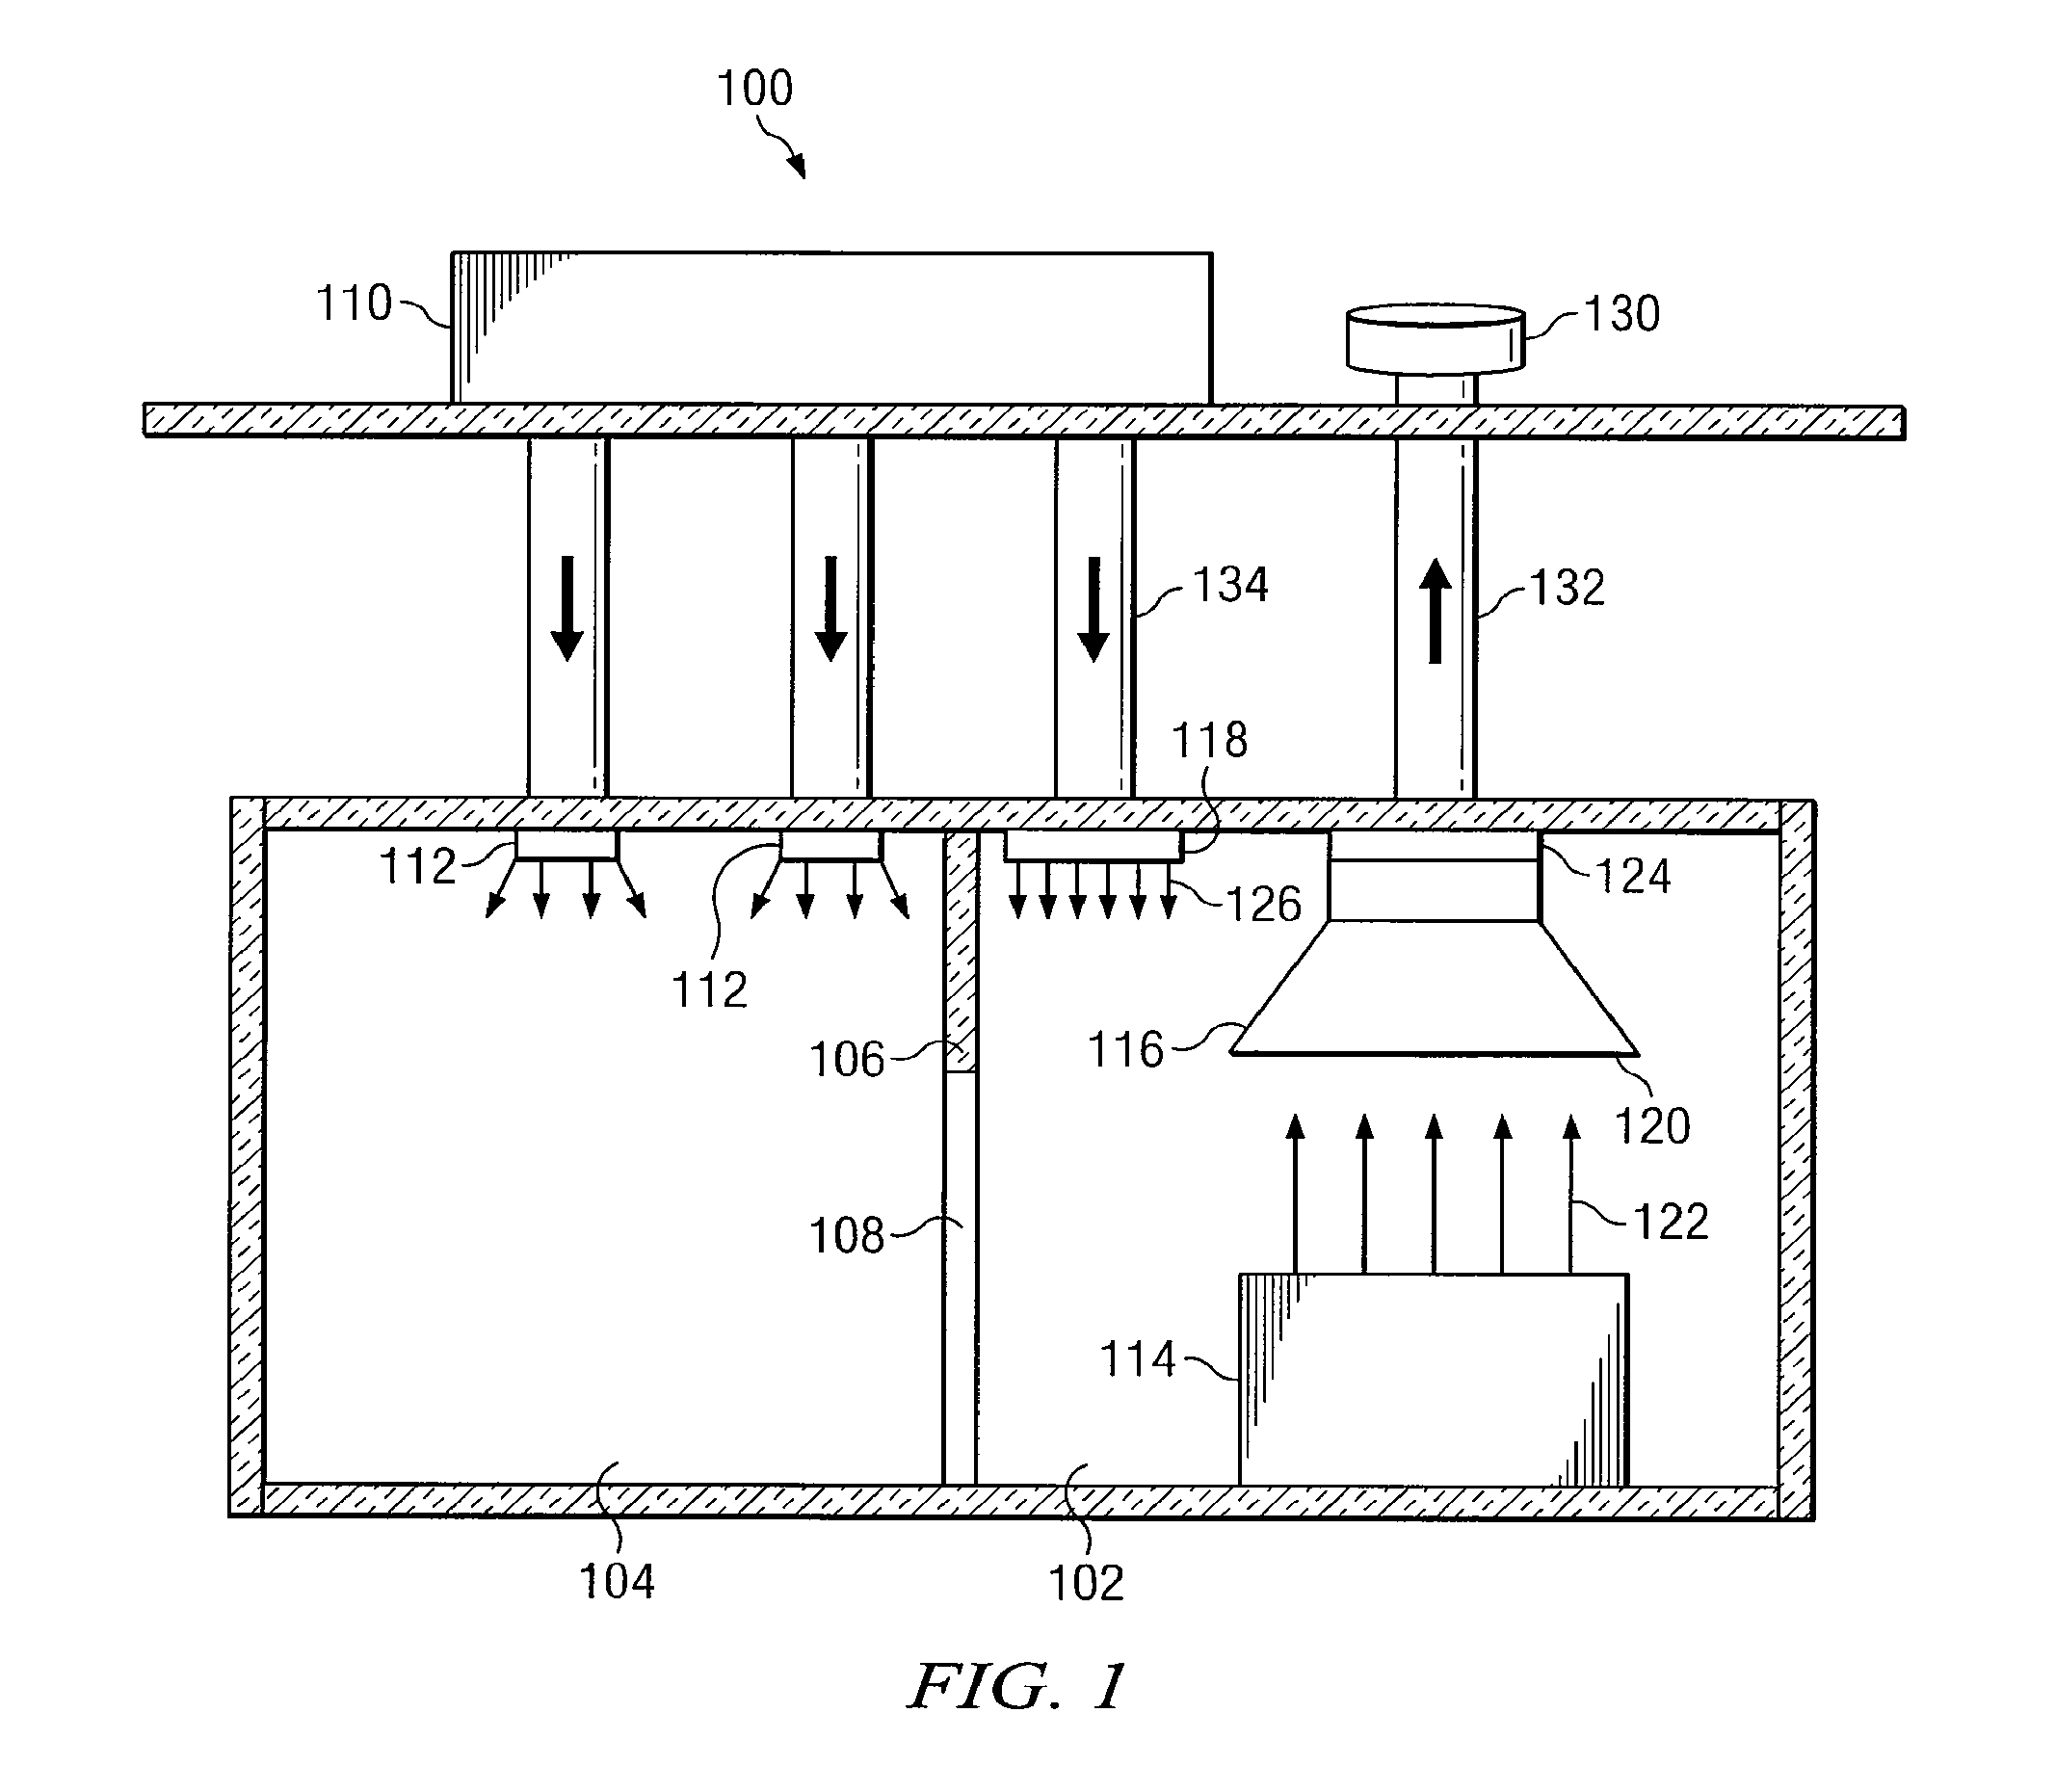 patent us autonomous ventilation system patents patent drawing